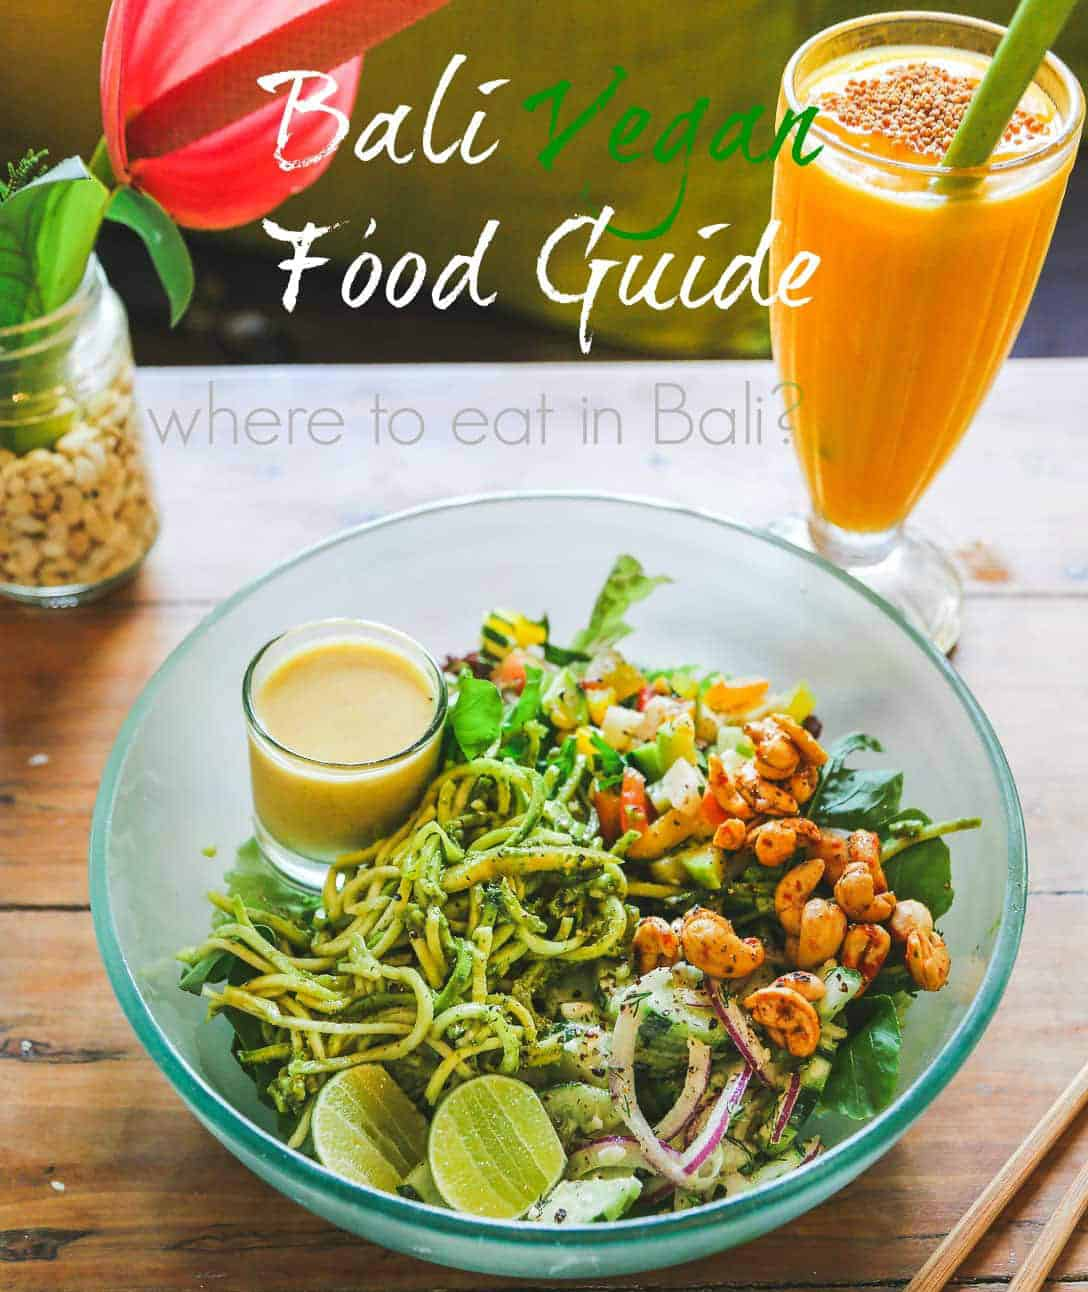 Bali Food Guide - where to eat in Bali?